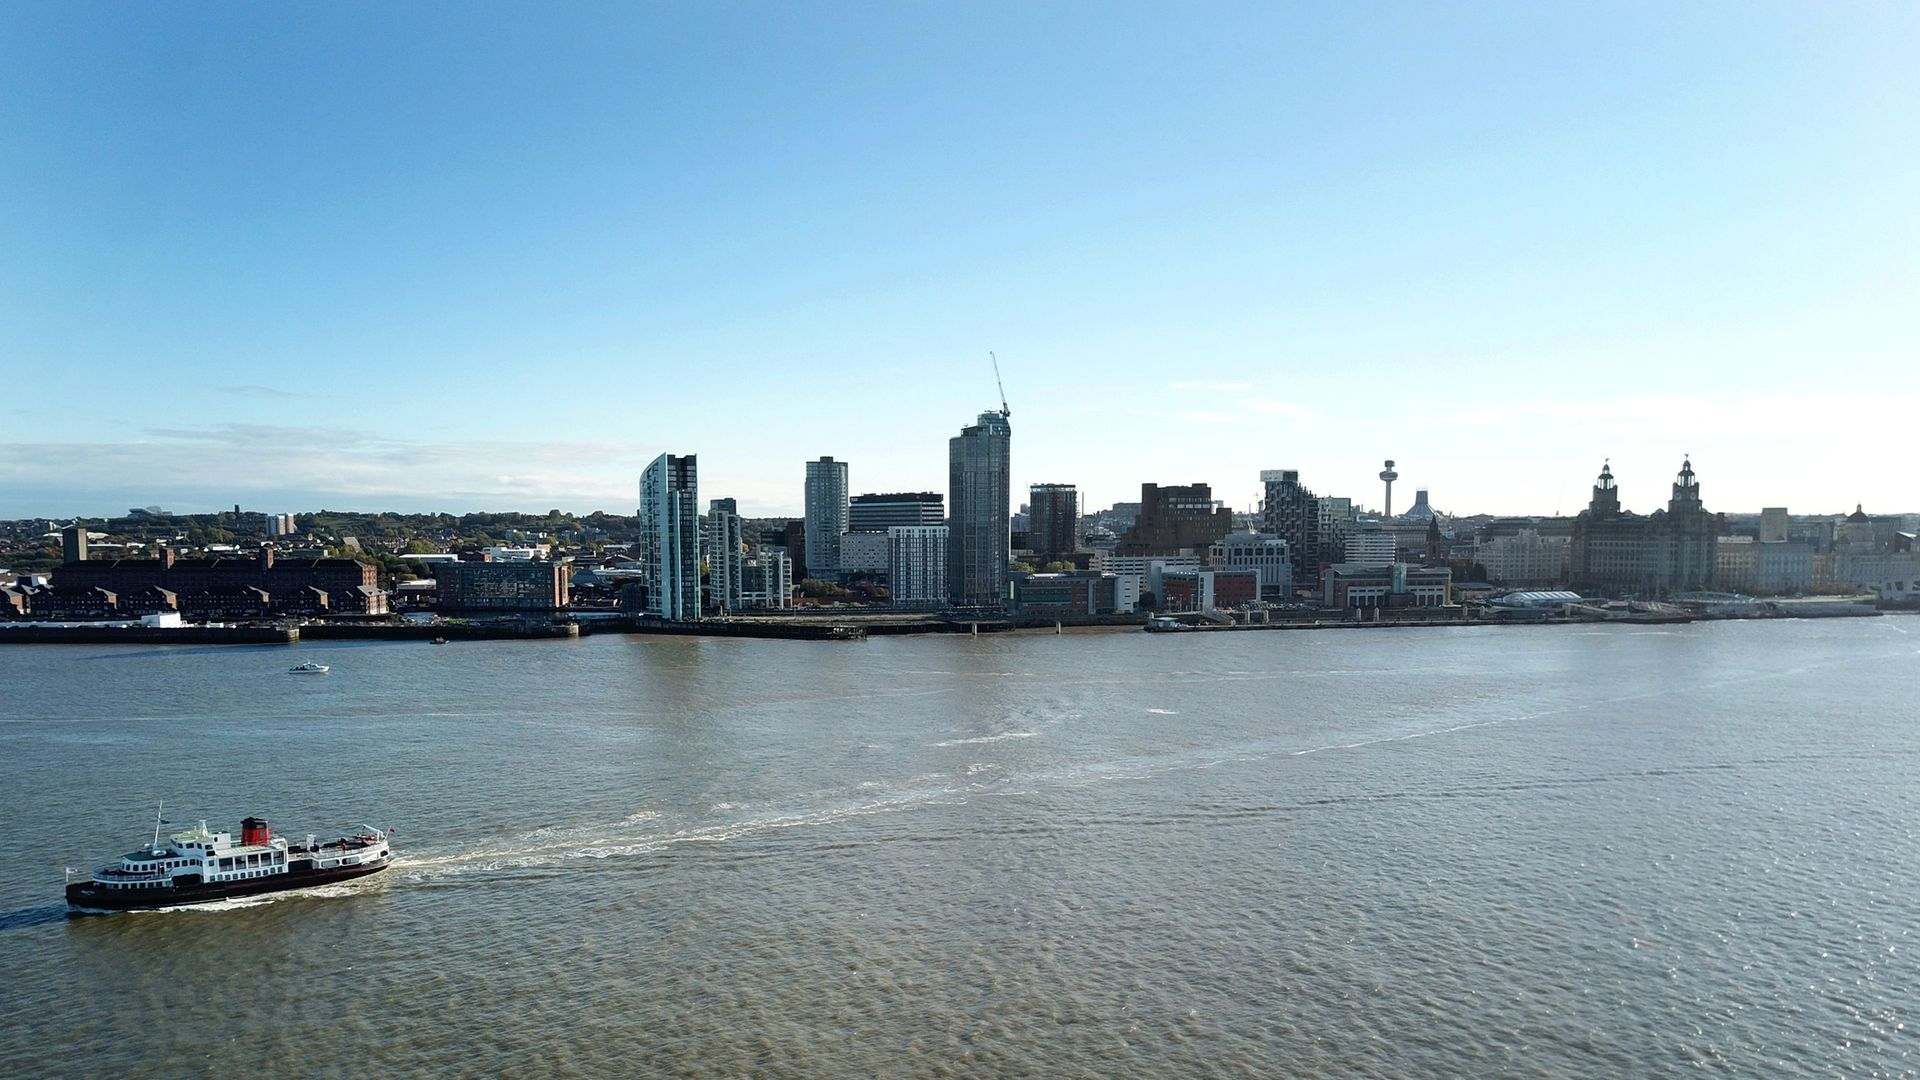 """Liverpool was the first area to be designated at """"very high risk"""" under a new three-tiered system.  (Photo by Paul ELLIS / AFP) (Photo by PAUL ELLIS/AFP via Getty Images) - Credit: AFP via Getty Images"""